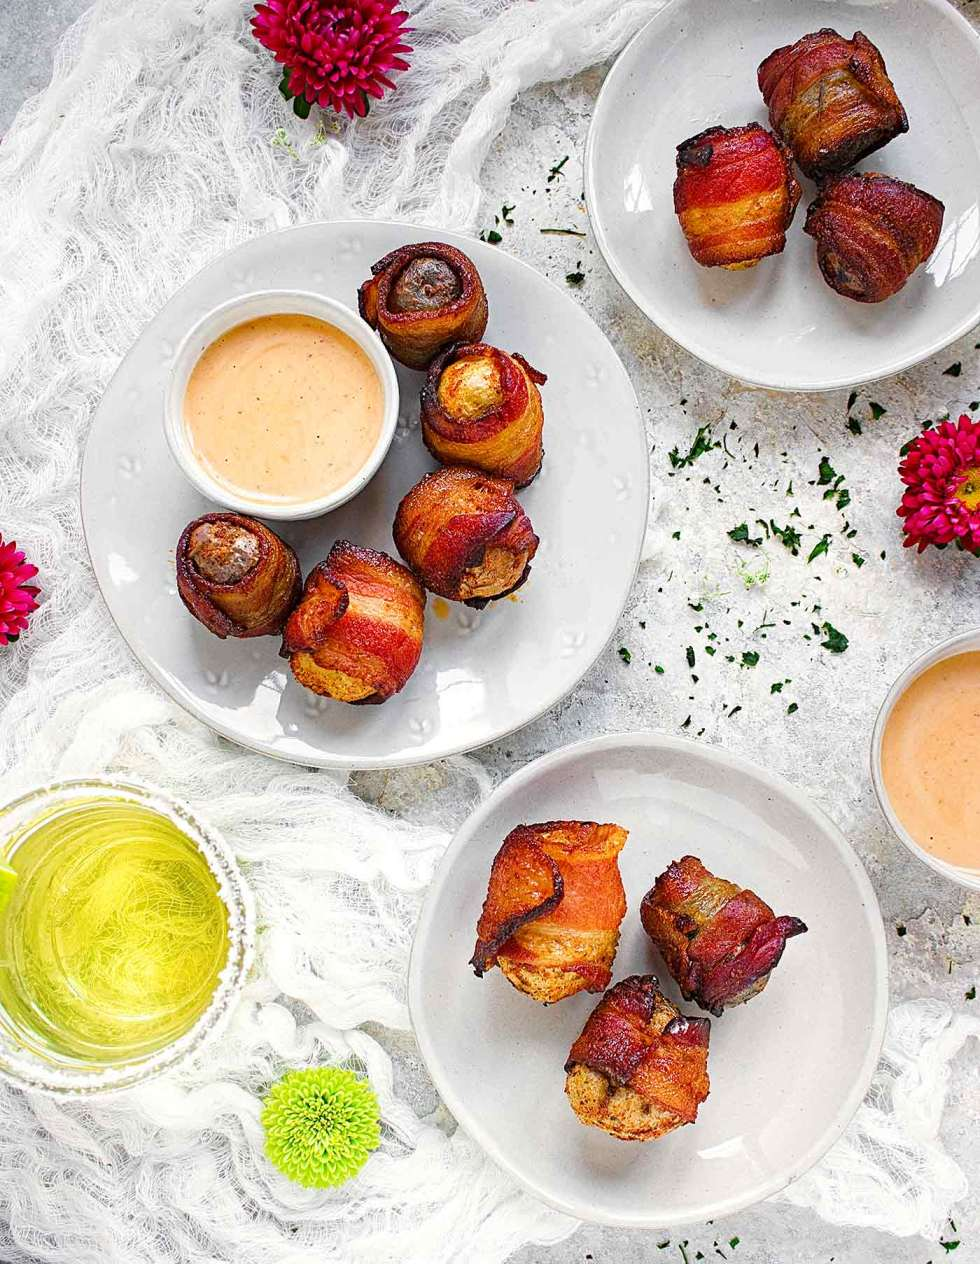 Bacon wrapped potatoes on individual plates with dipping sauce